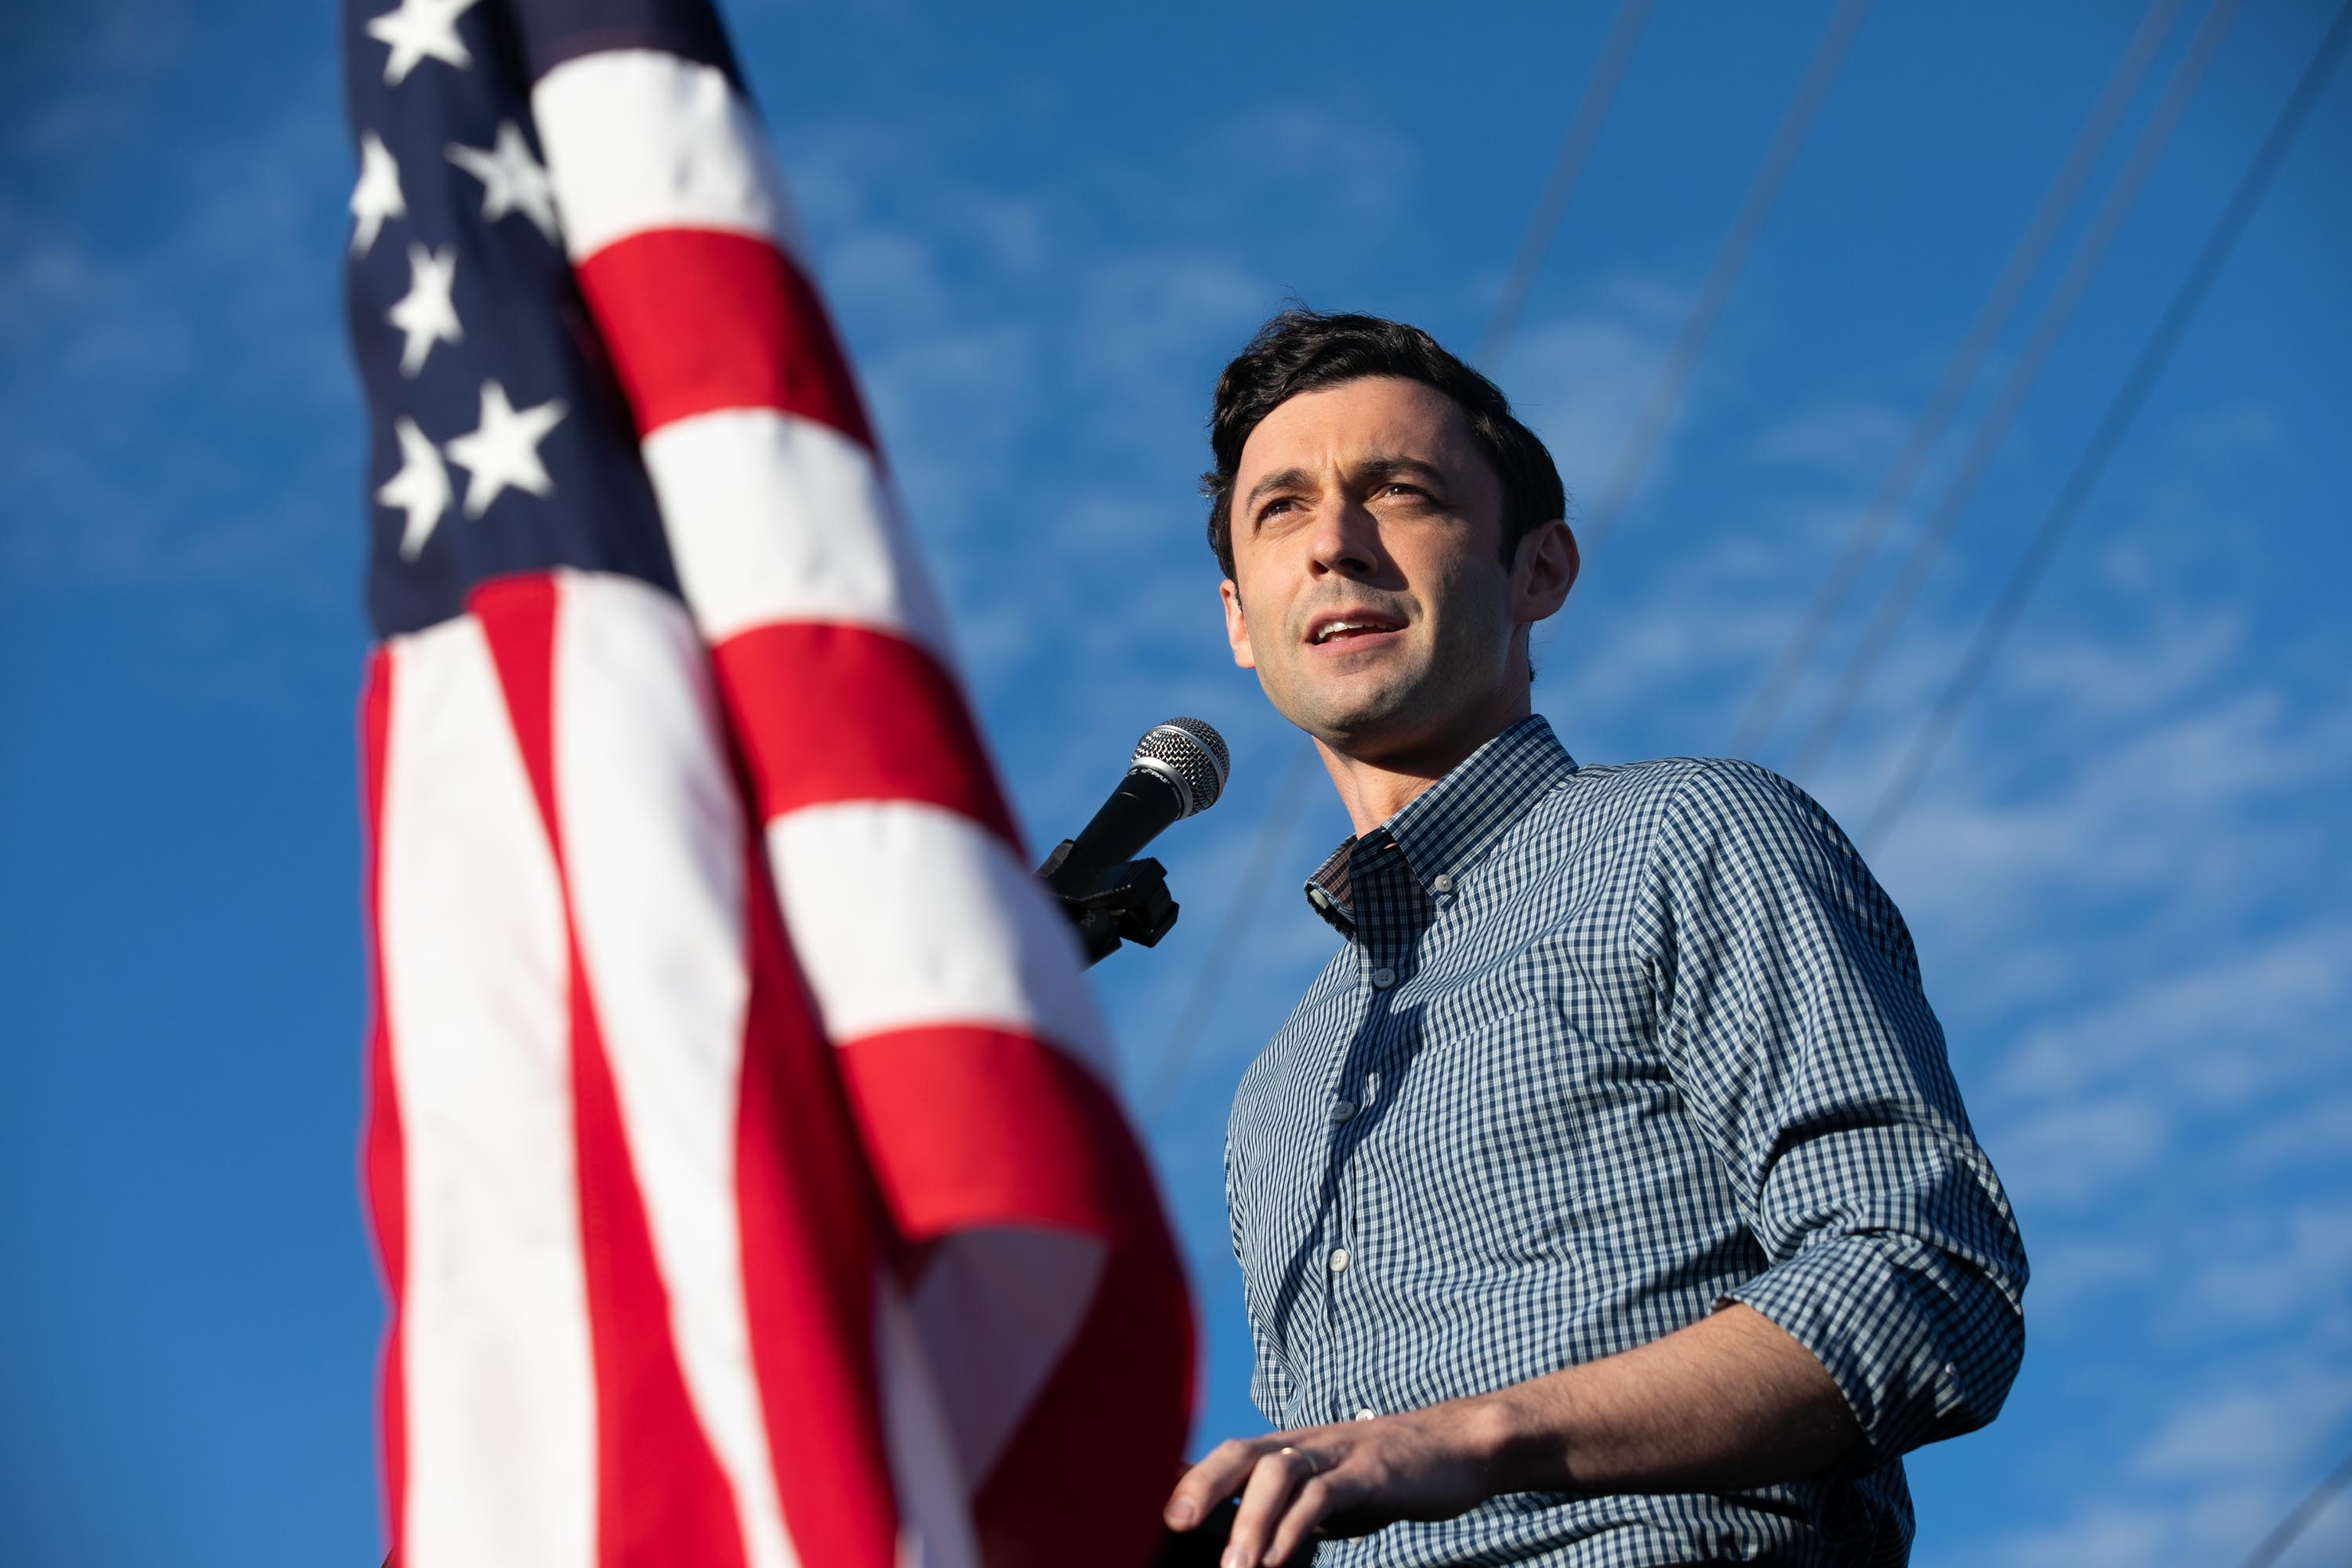 Democratic U.S. Senate candidate Jon Ossoff of Georgia speaks to supporters during a rally on November 15, 2020 in Marietta, Georgia.